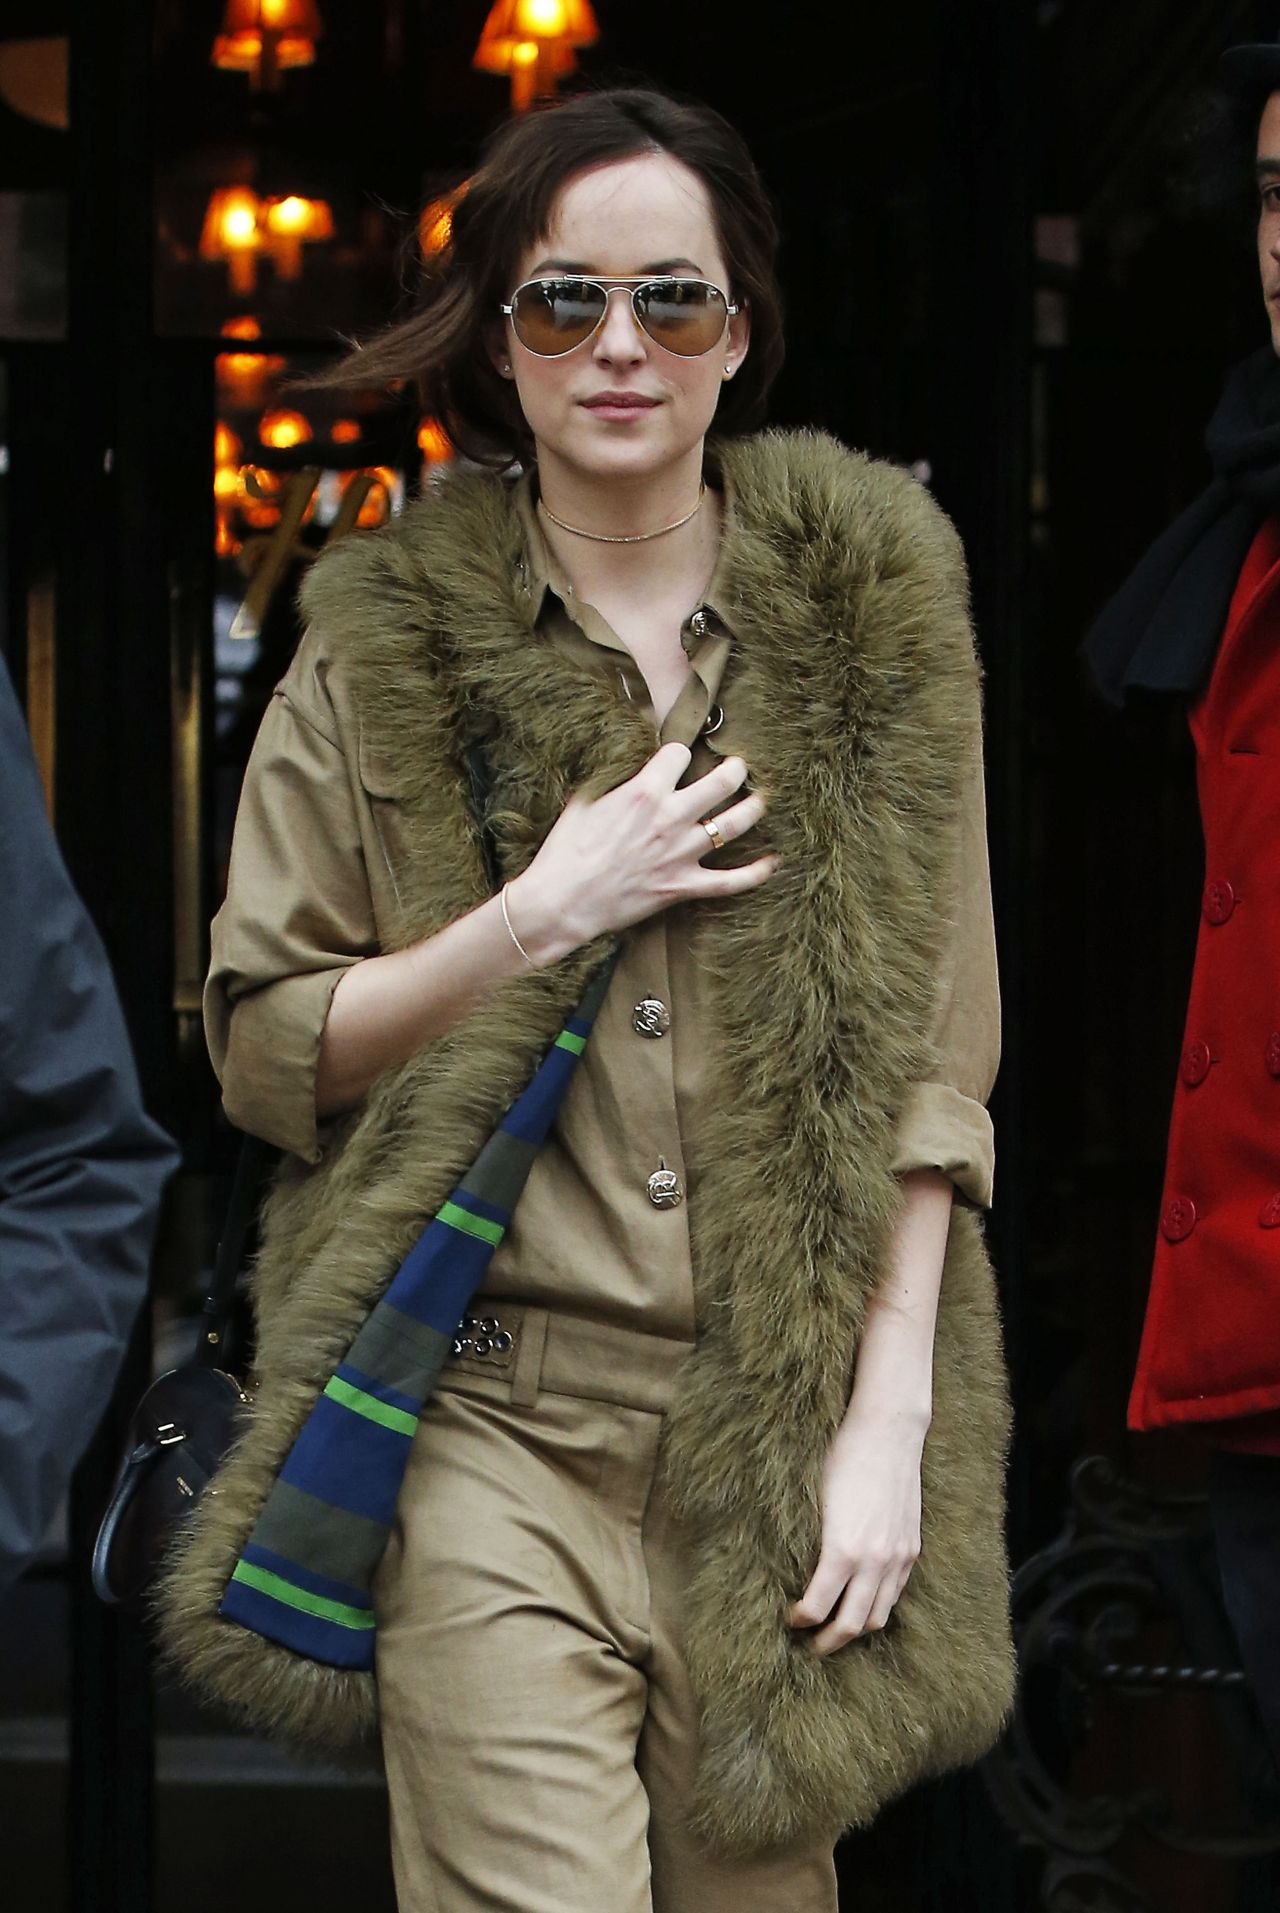 Dakota Johnson Style - Leaving the Bowery Hotel in New York City, Feb. 2015